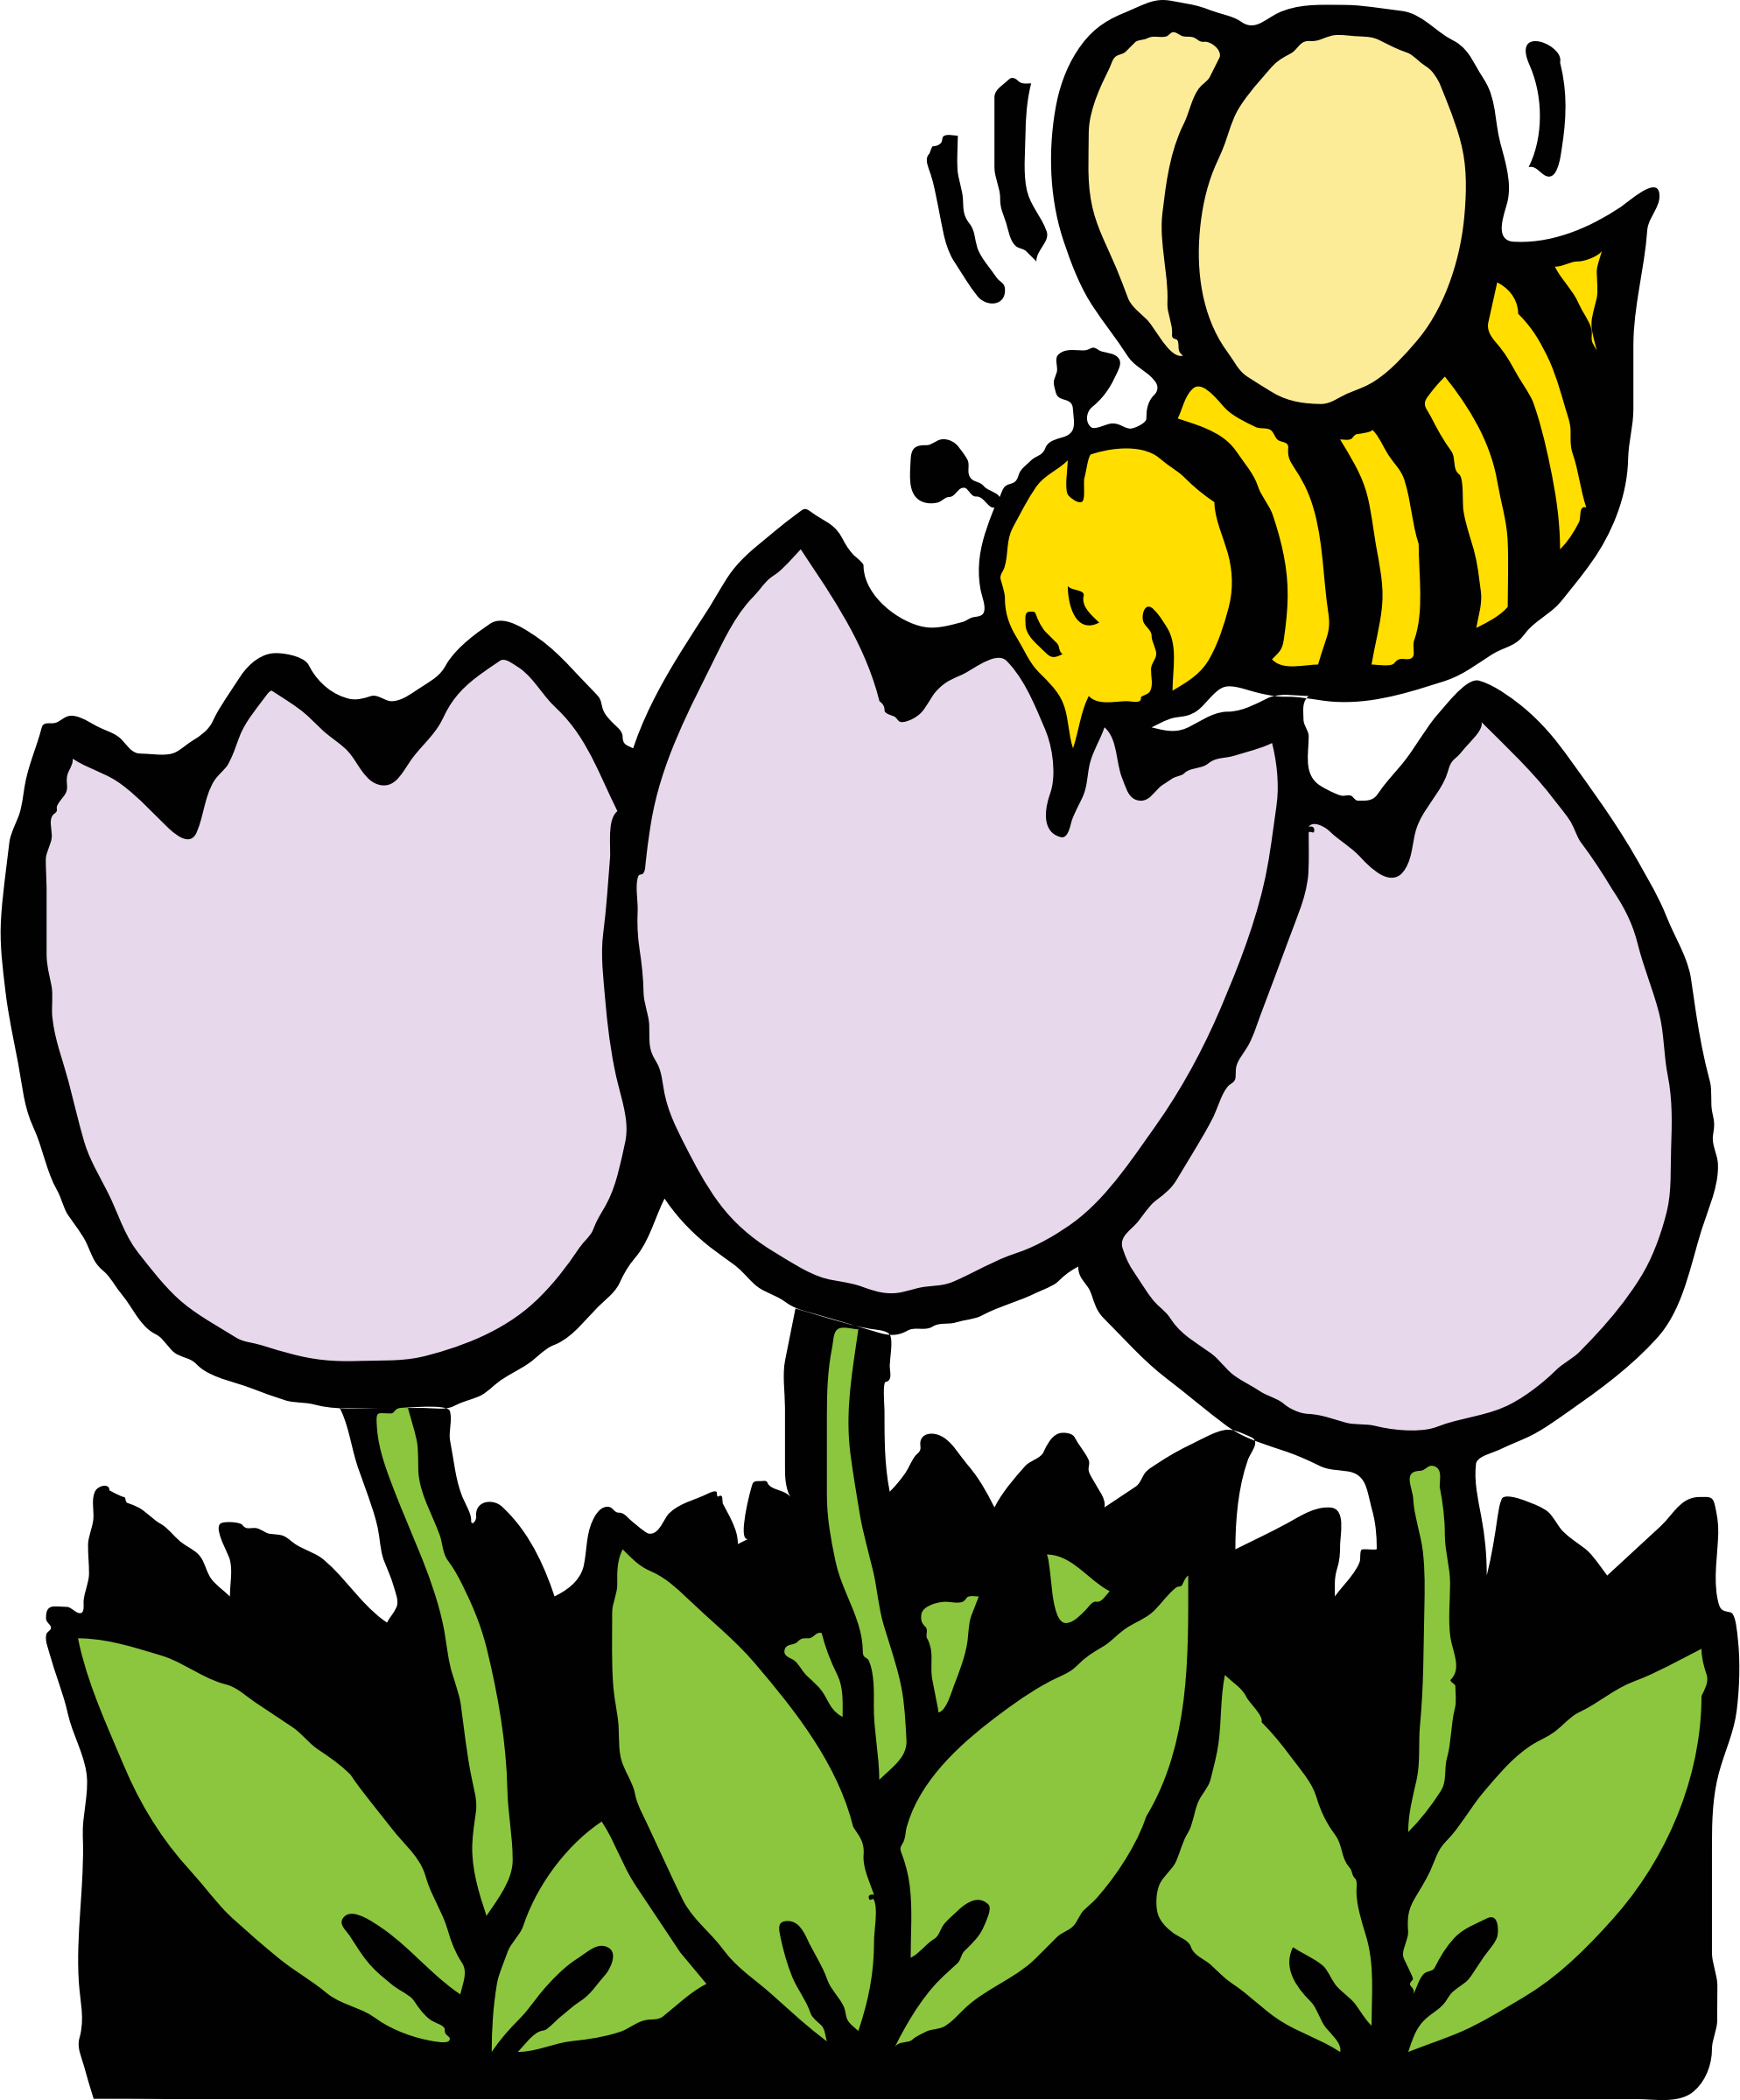 Flower with bee clipart image free stock Clipart - bee and flowers image free stock